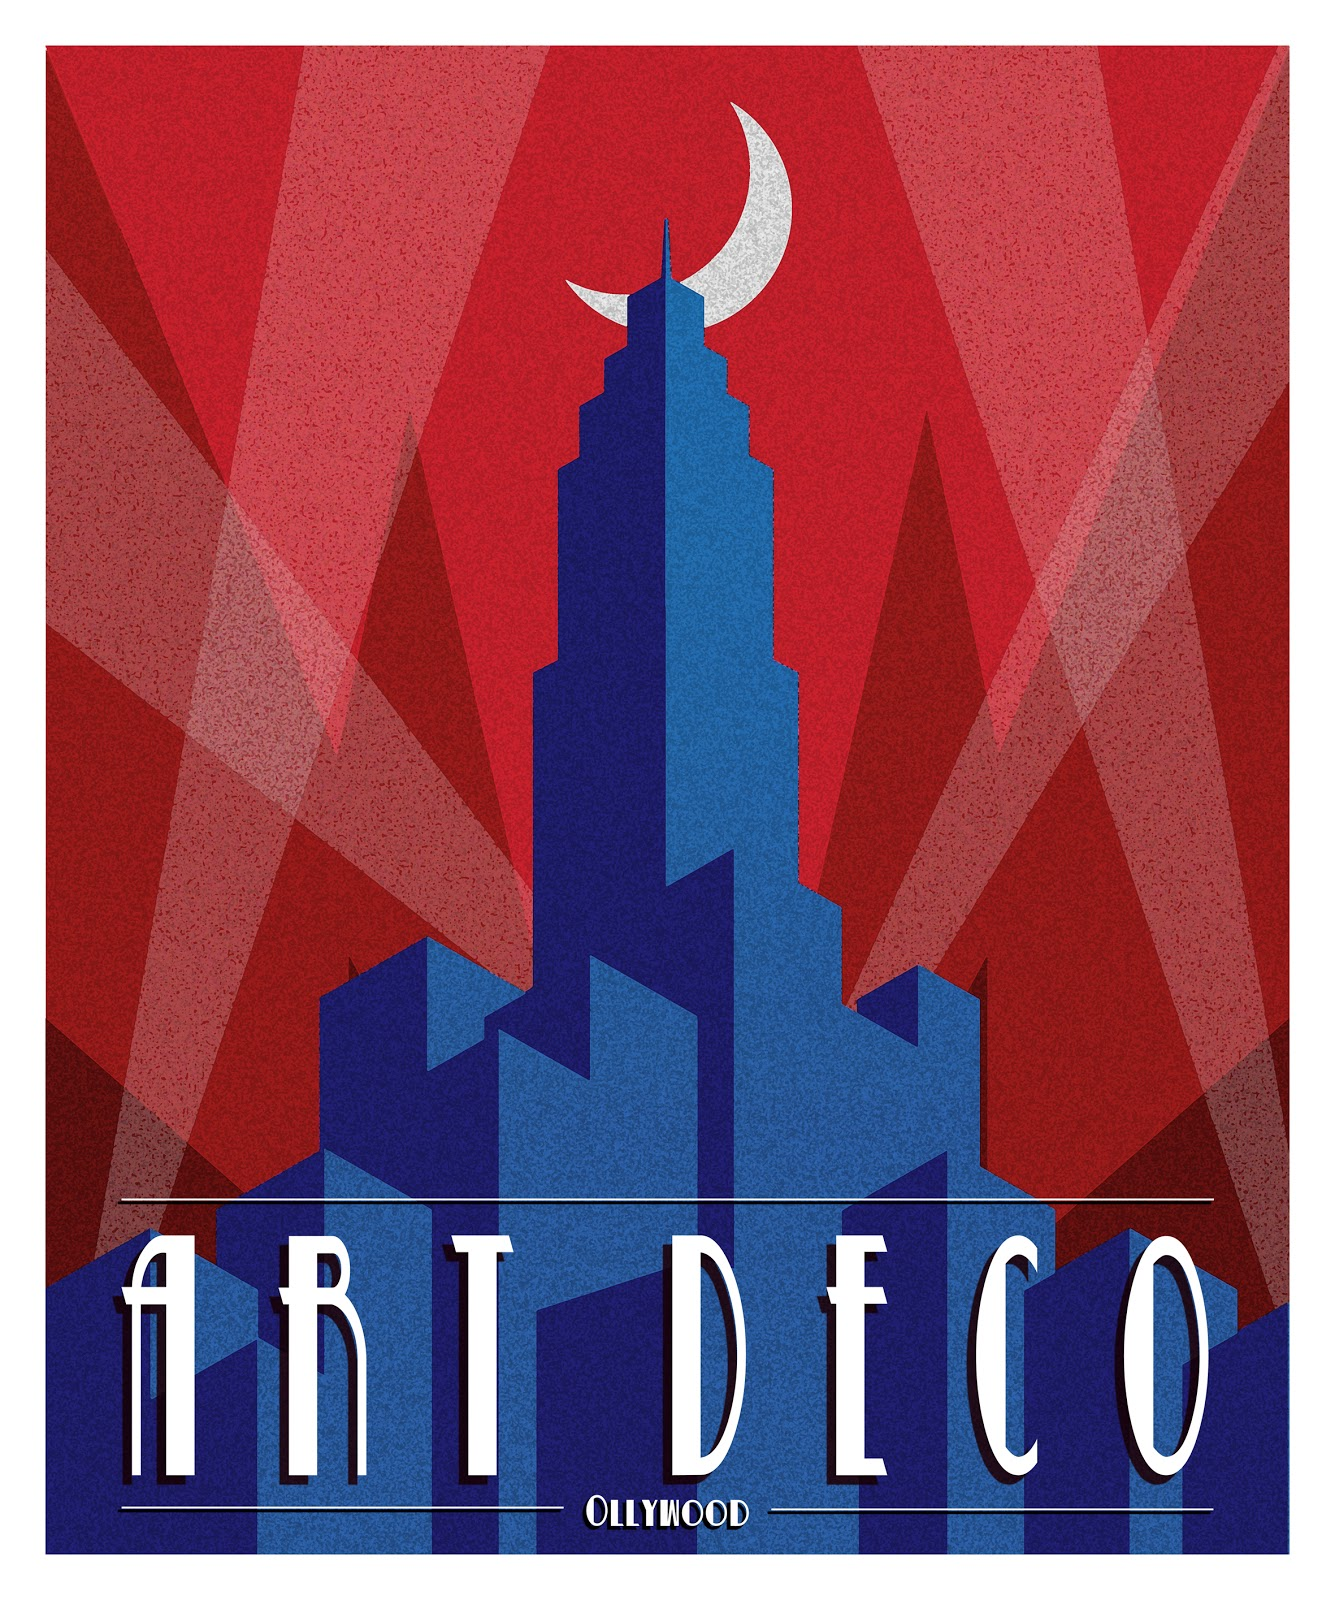 m grace designs inc chicago interior design art deco posters. Black Bedroom Furniture Sets. Home Design Ideas